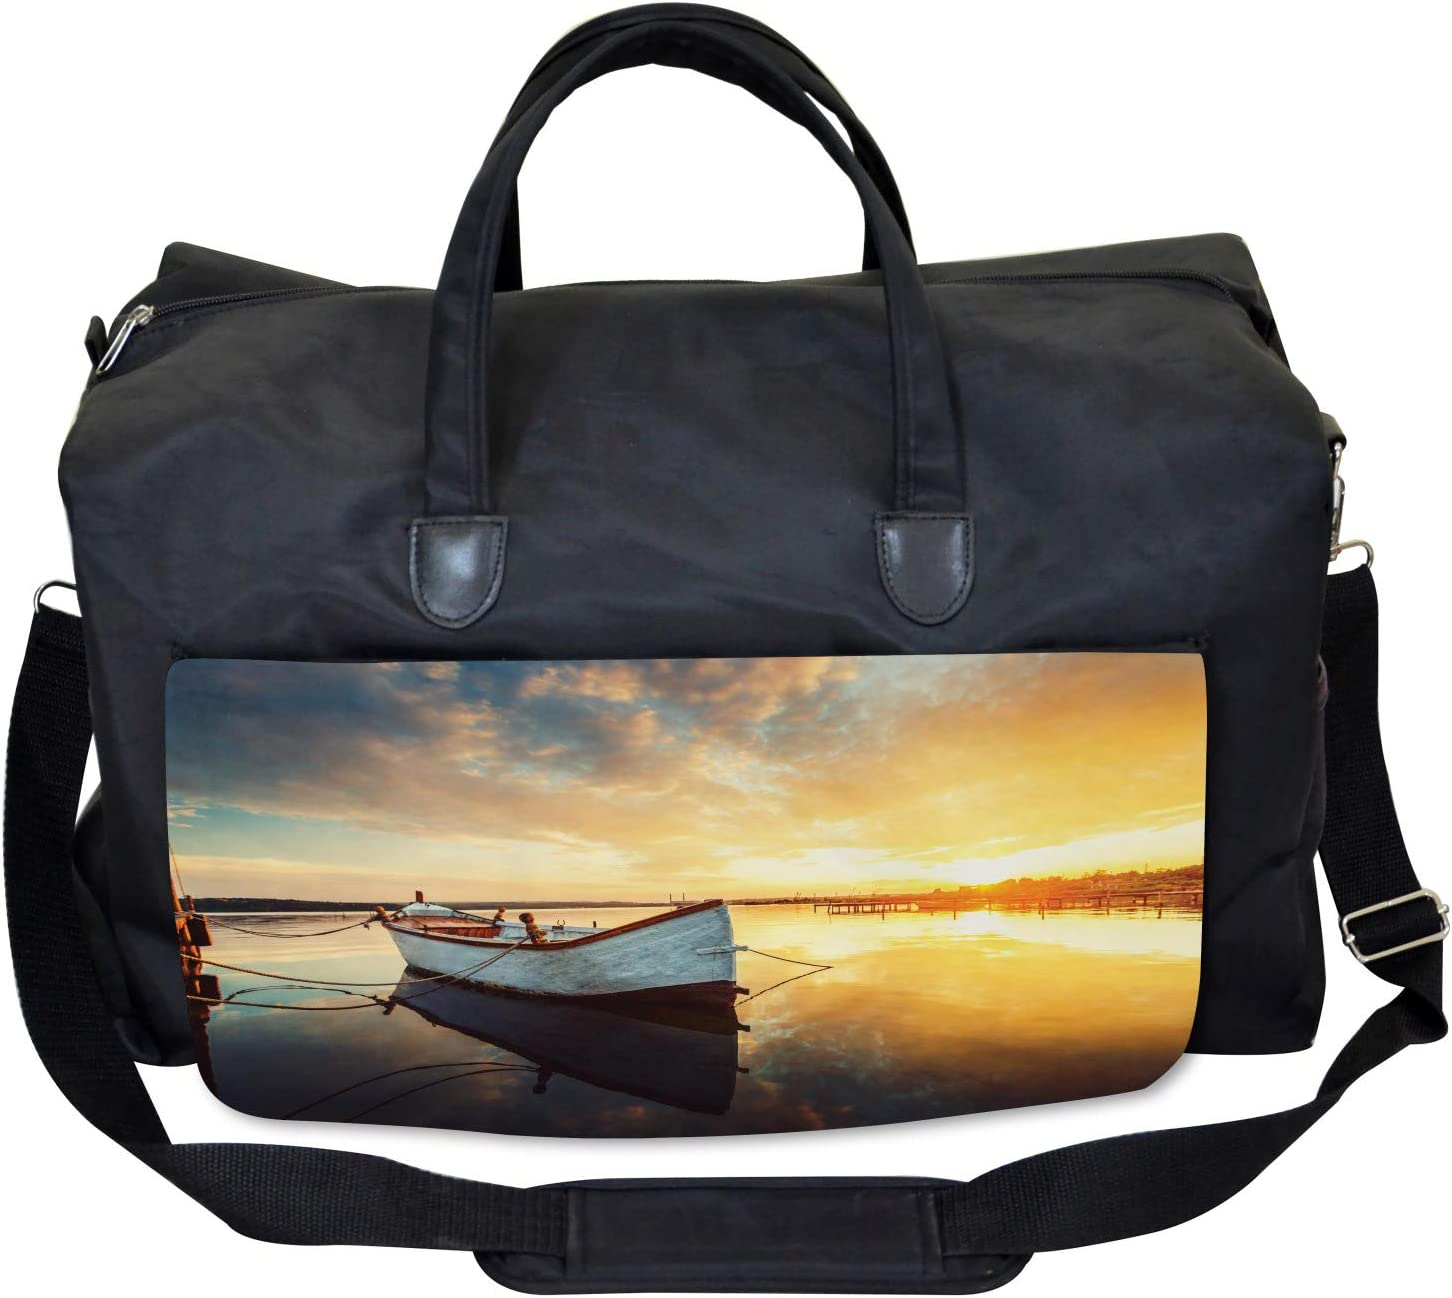 Sunset at Harbor Boat Ambesonne Holiday Gym Bag Large Weekender Carry-on